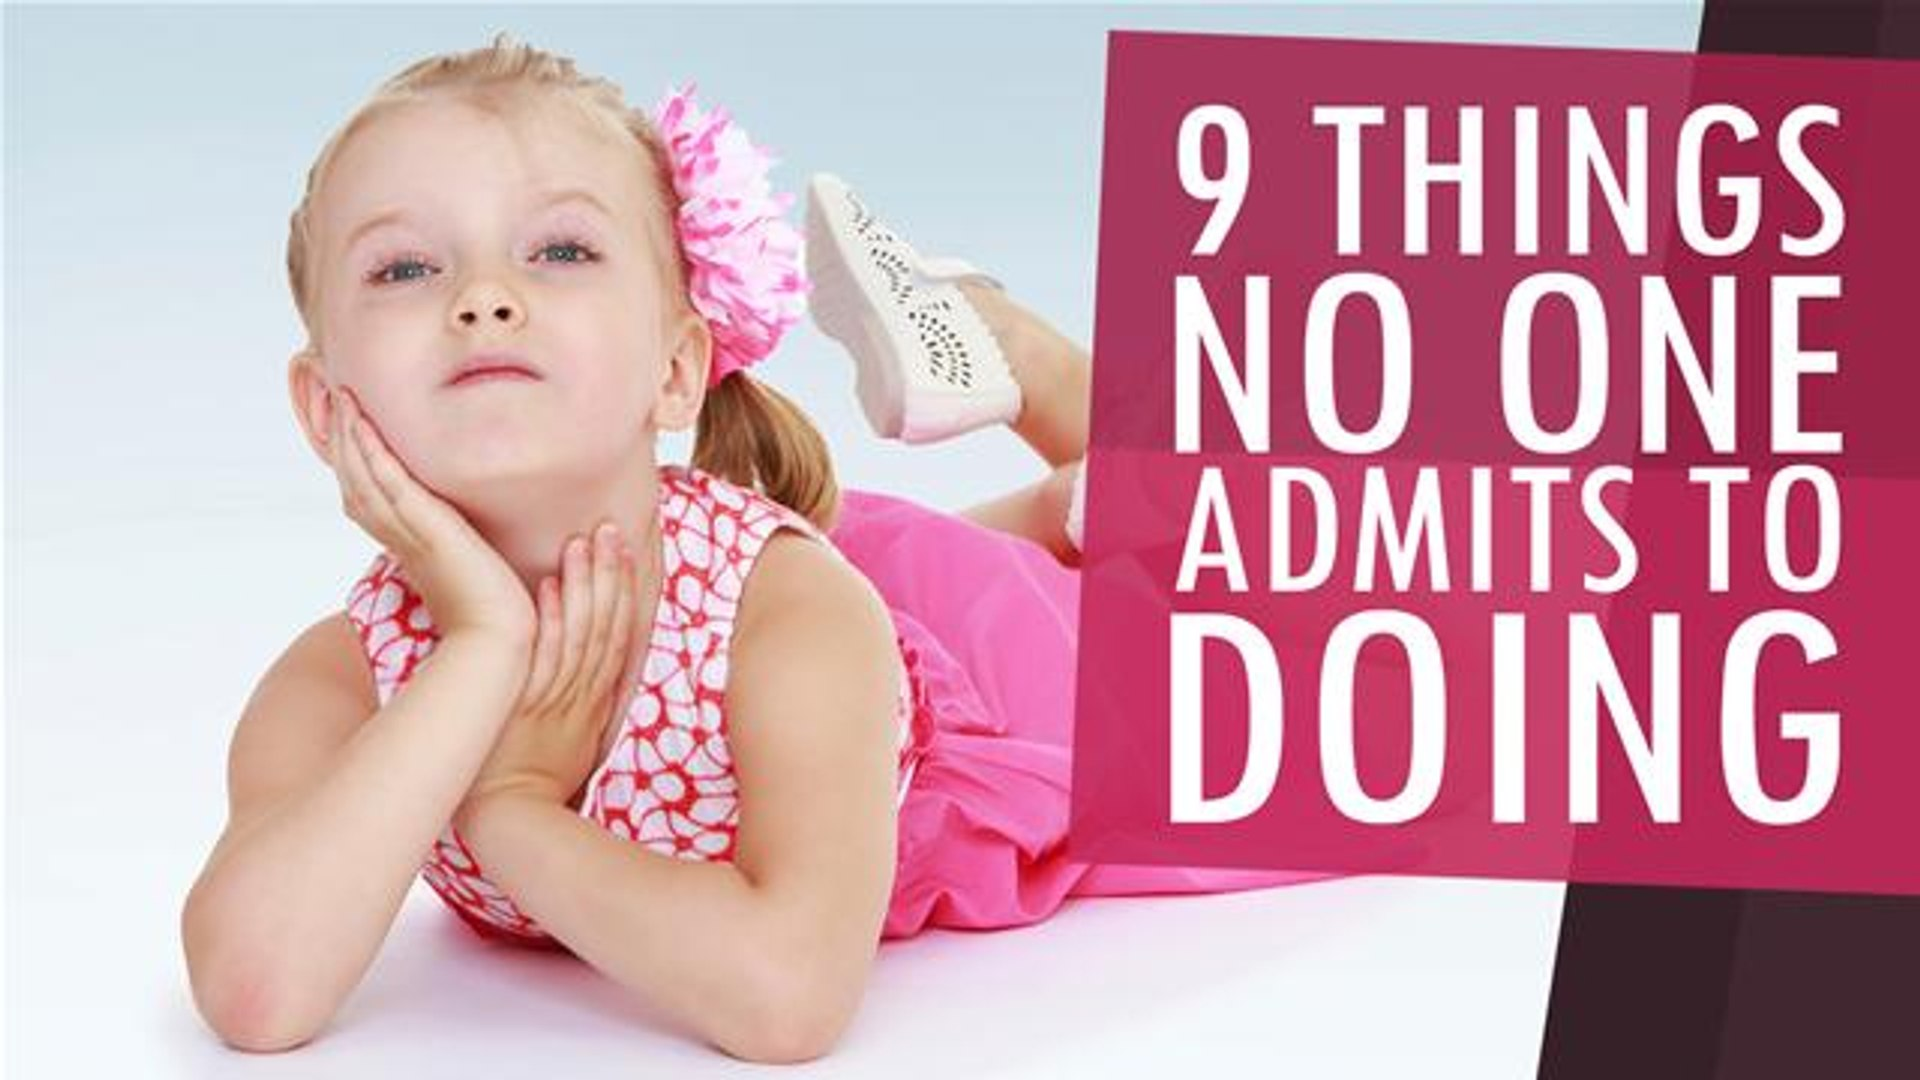 9 Things No One Admits To Doing